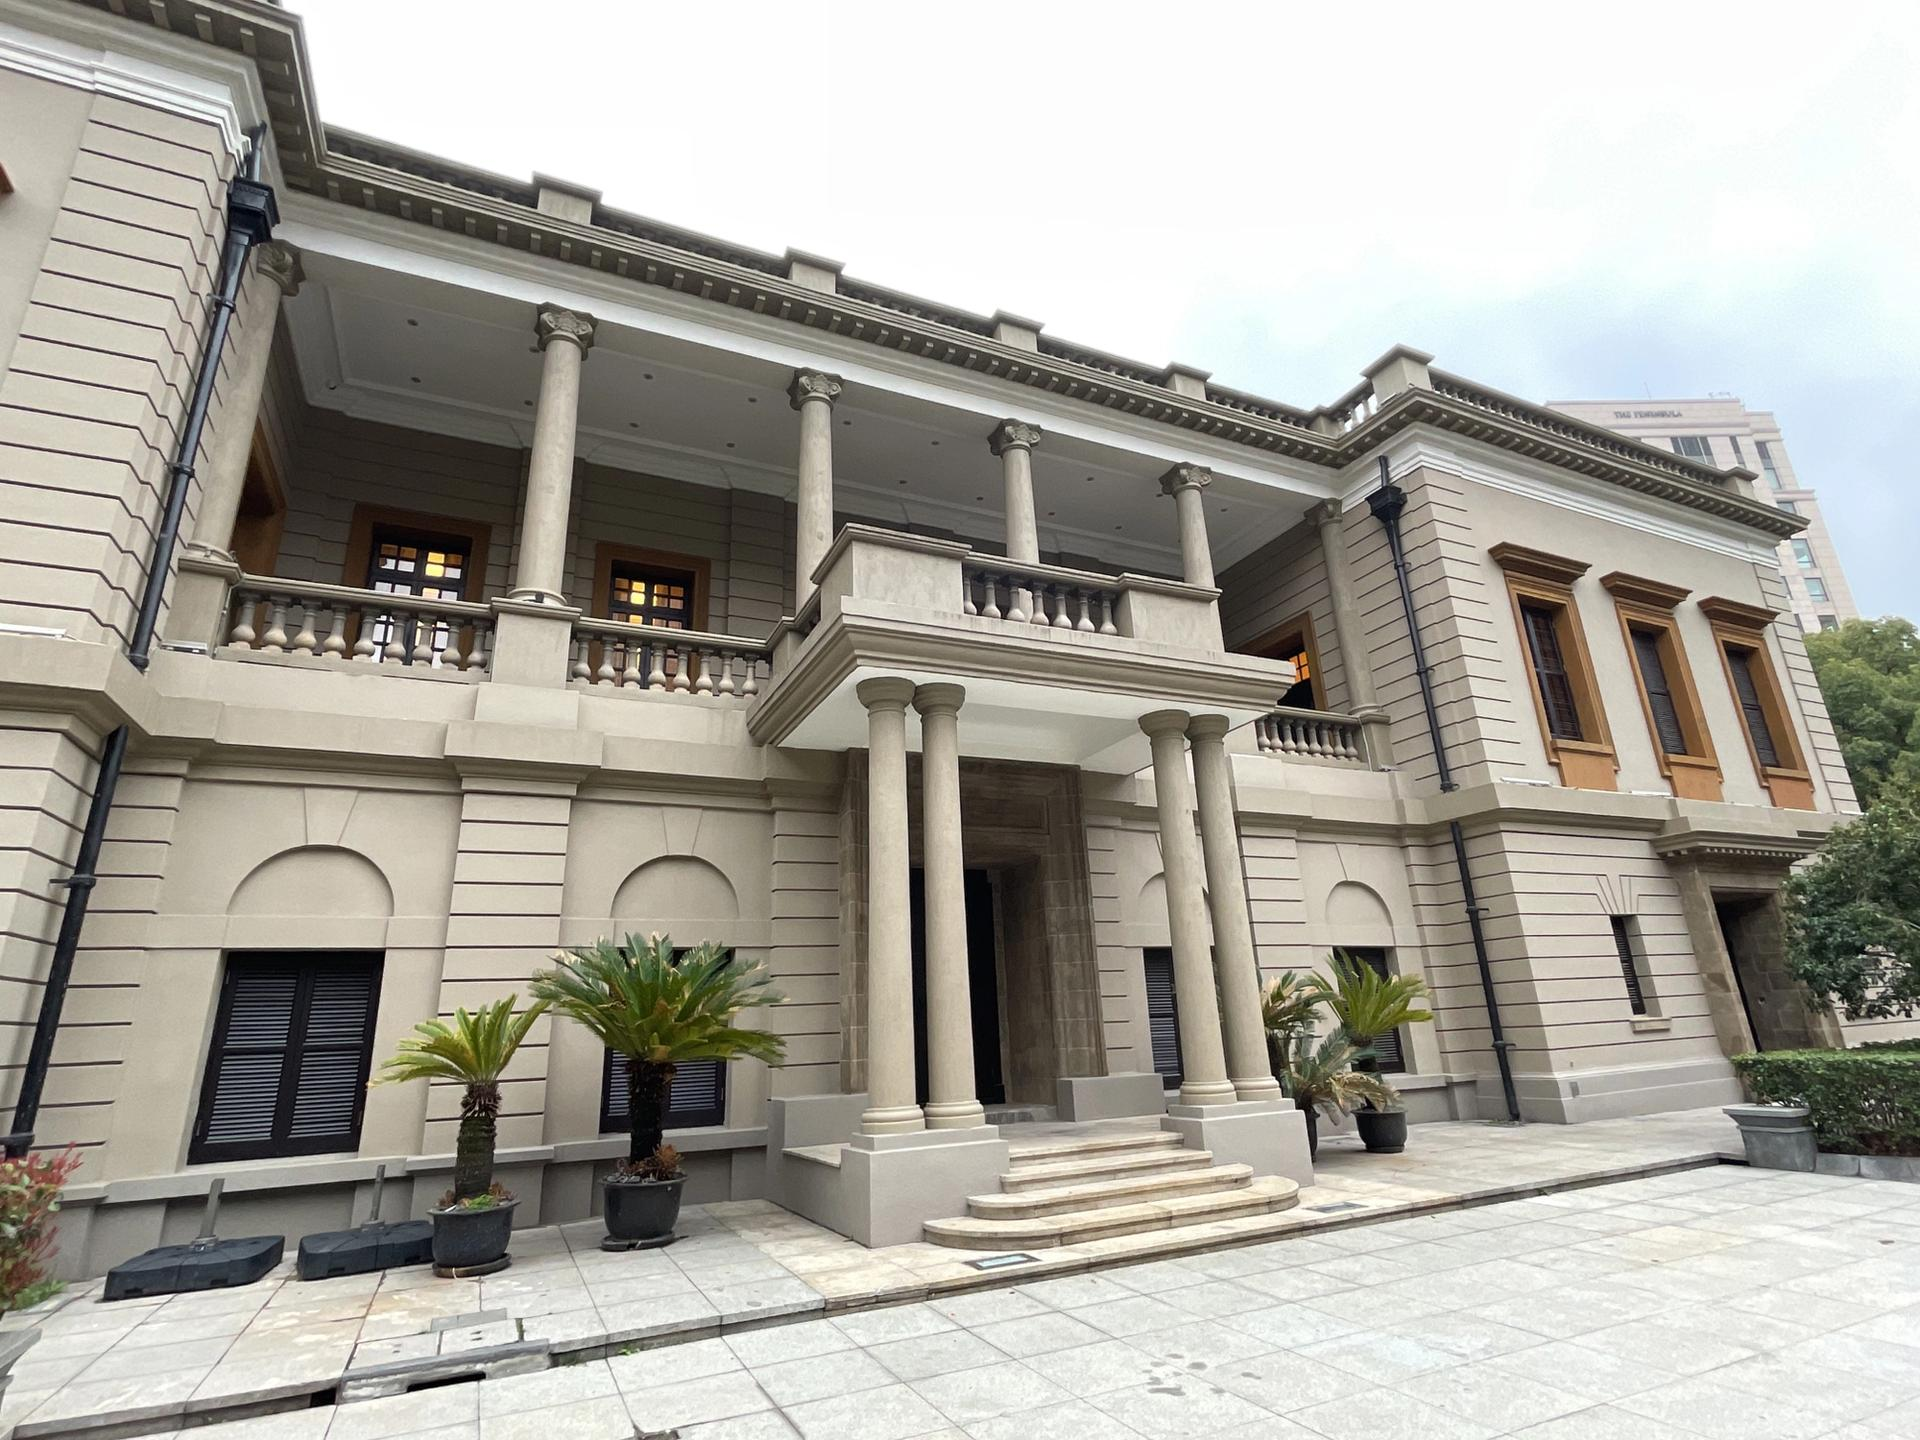 The exhibition will be held in a former British Consulate building in the waterfront Bund district